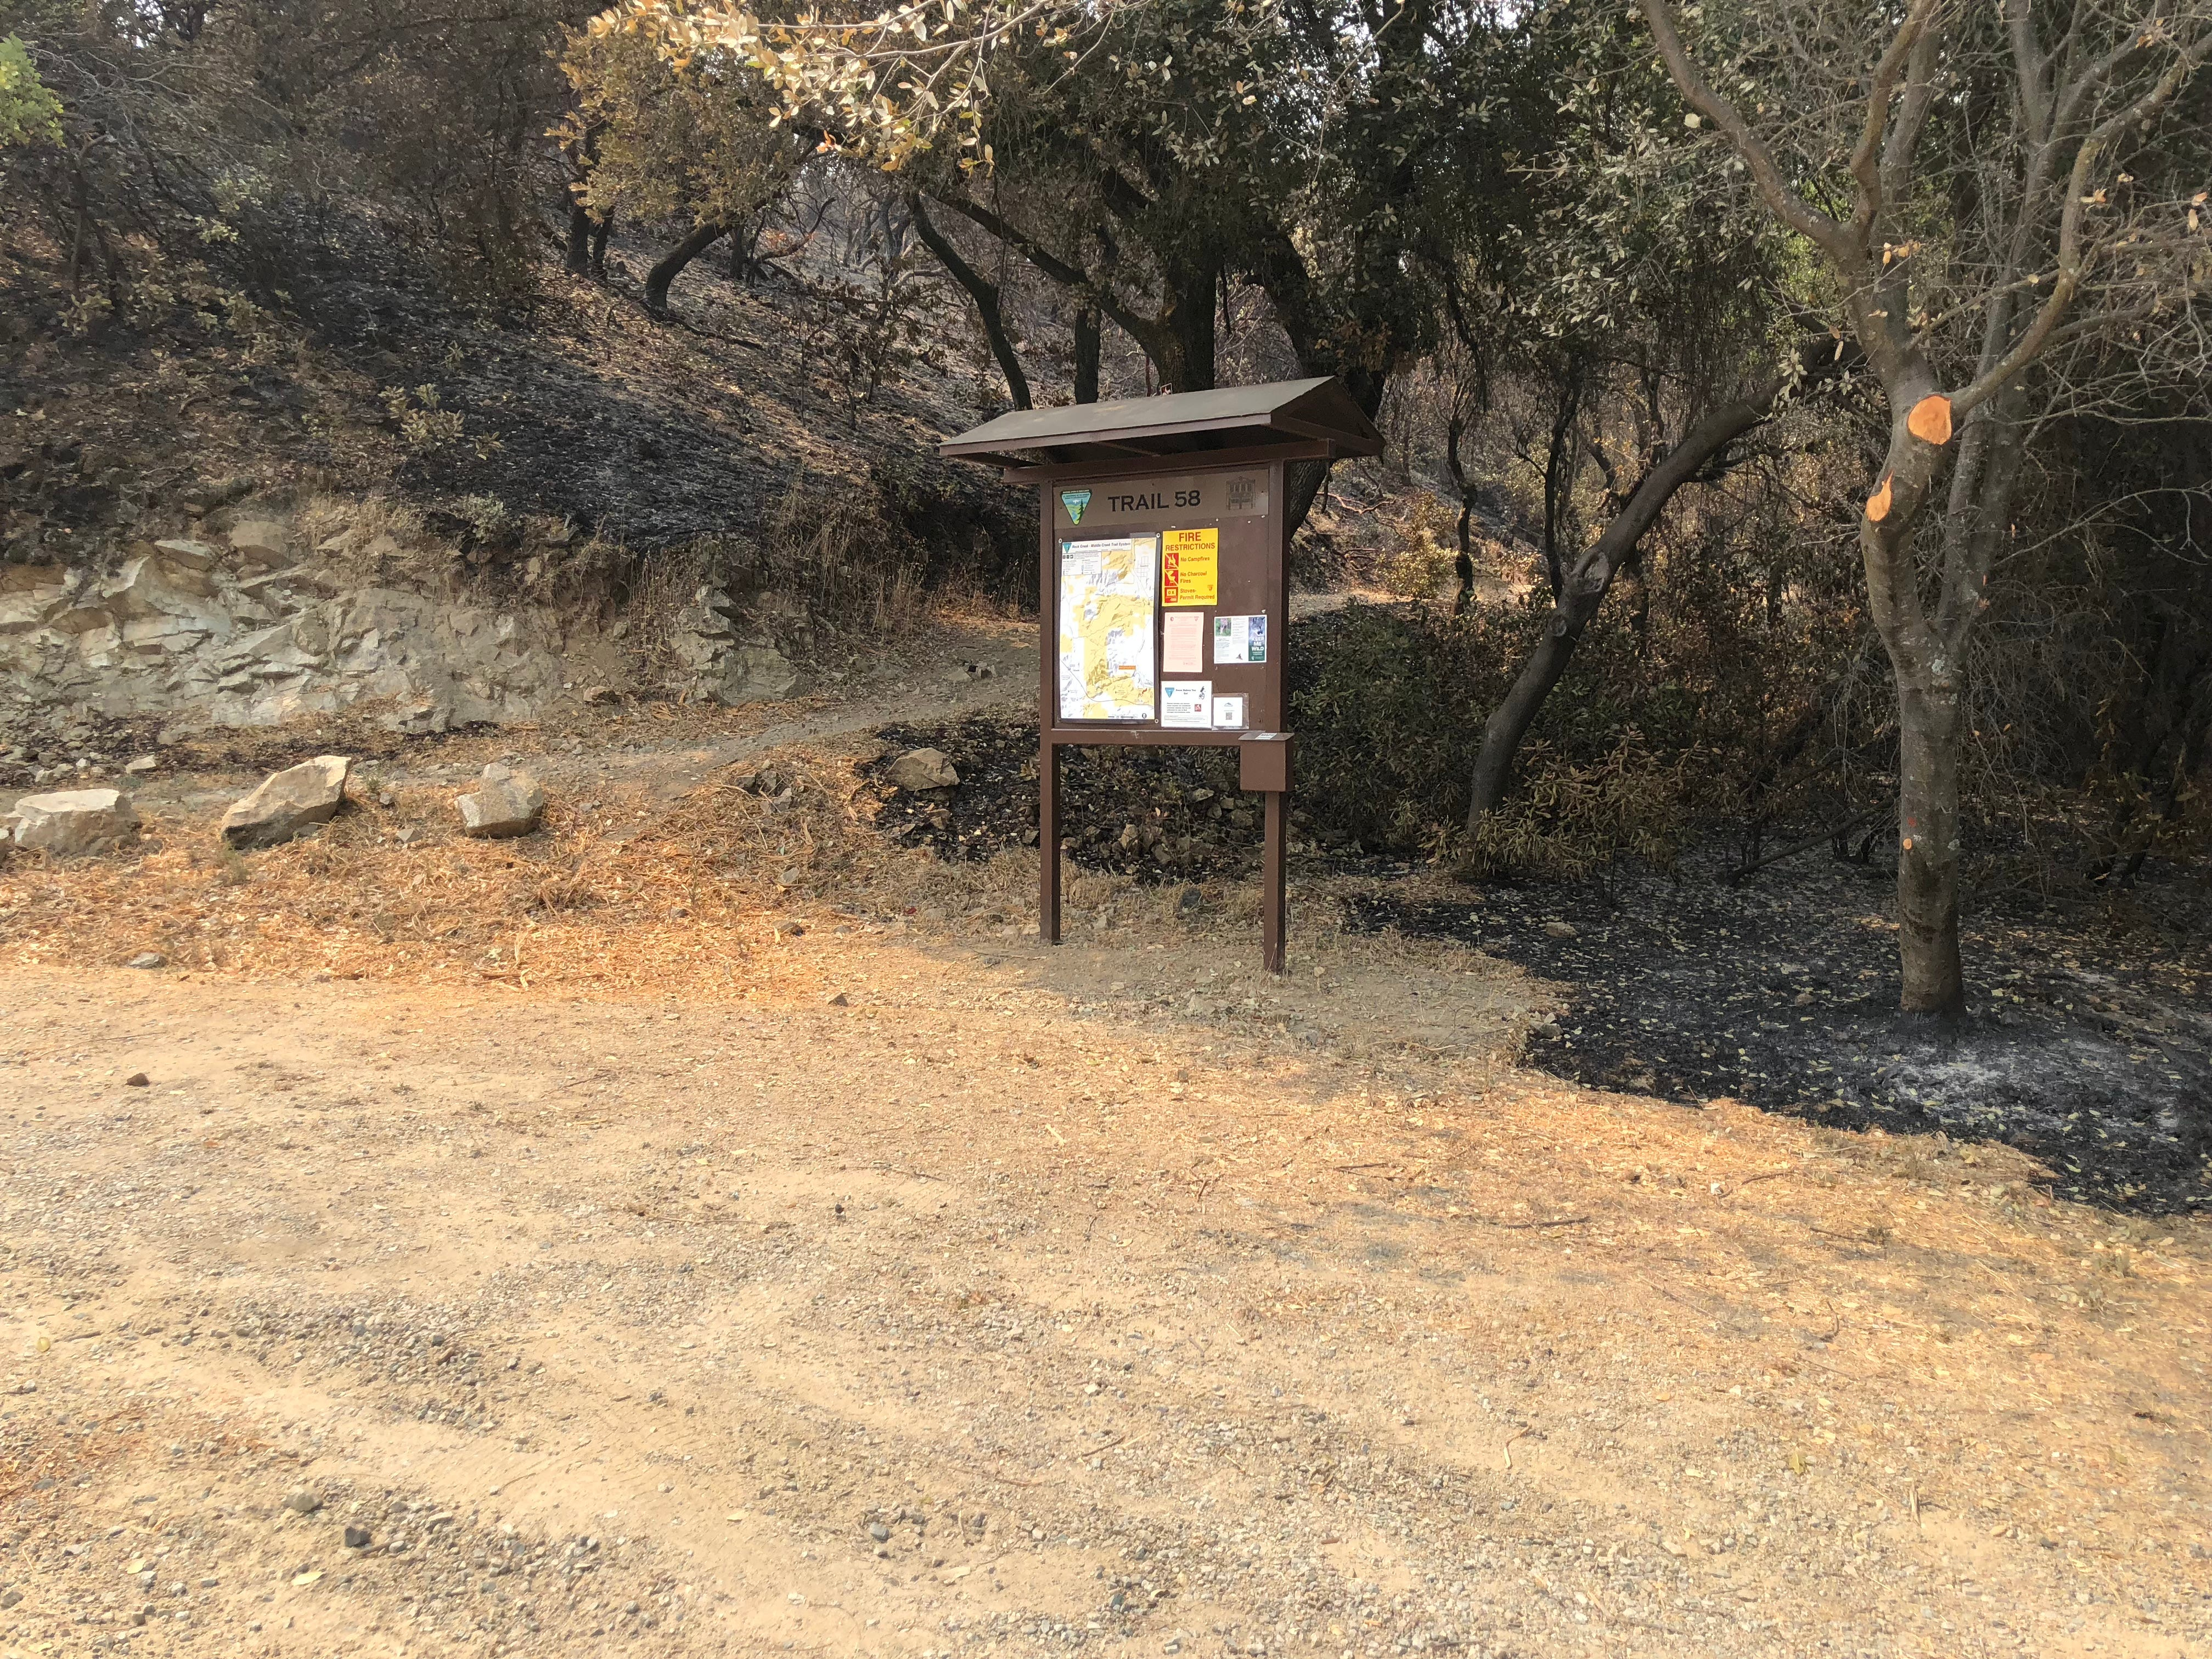 This parking area for Trial 58 off Iron Mountain Road is closed to the public as officials work on Carr Fire recovery efforts. A patch next to the trail is burnt but many trees near the area are still standing. Although one fallen tree is blocking the path at the beginning of the trail.